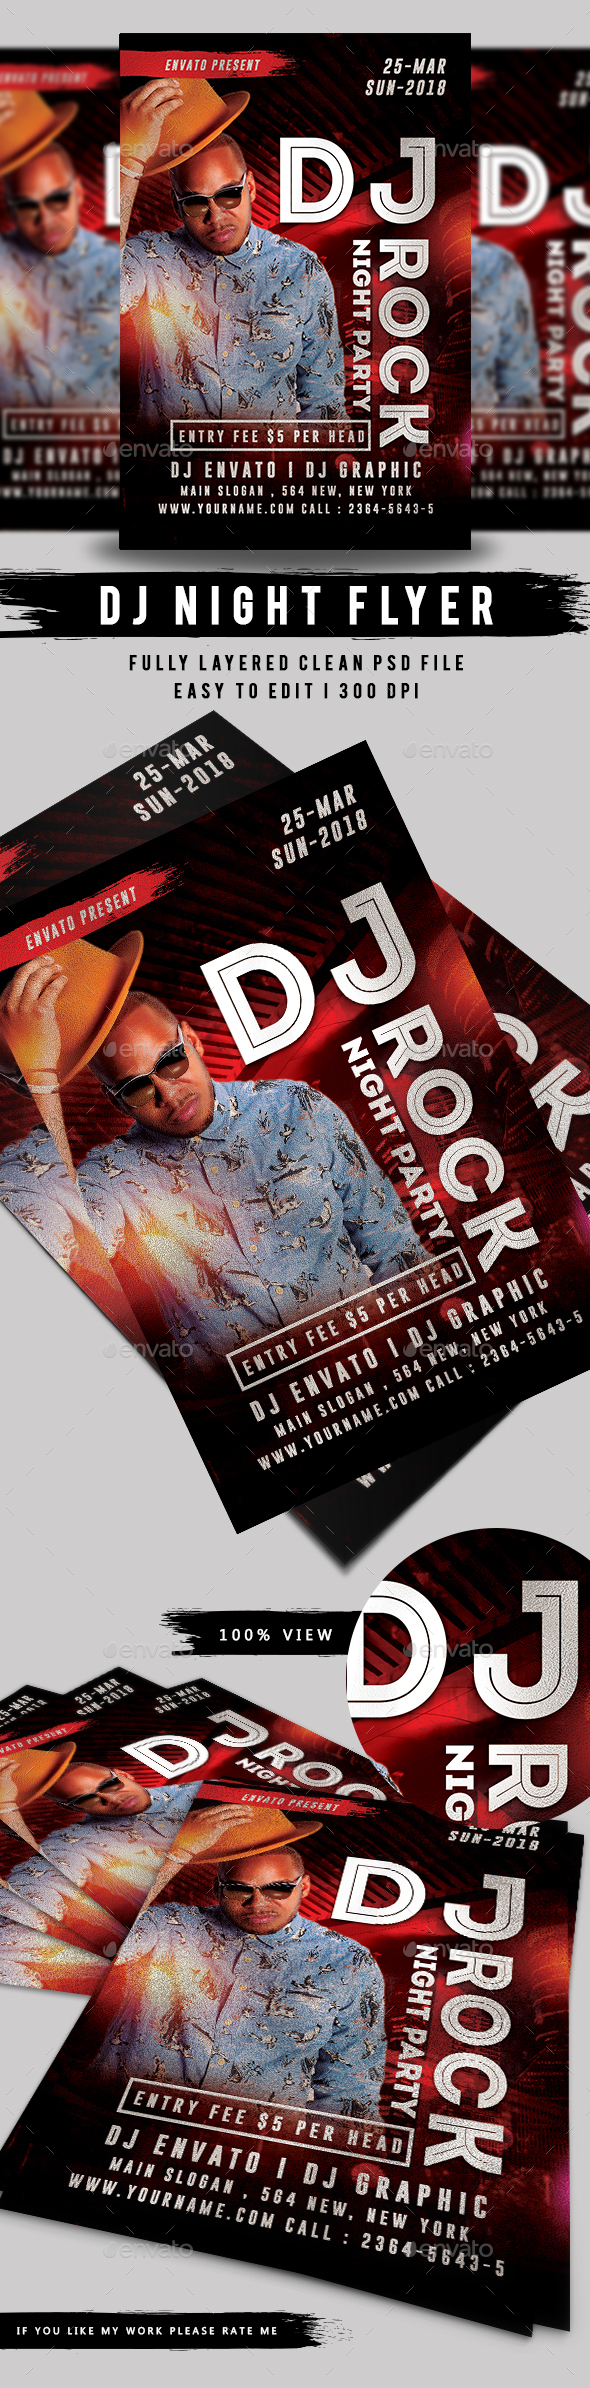 DJ Night Flyer - Events Flyers